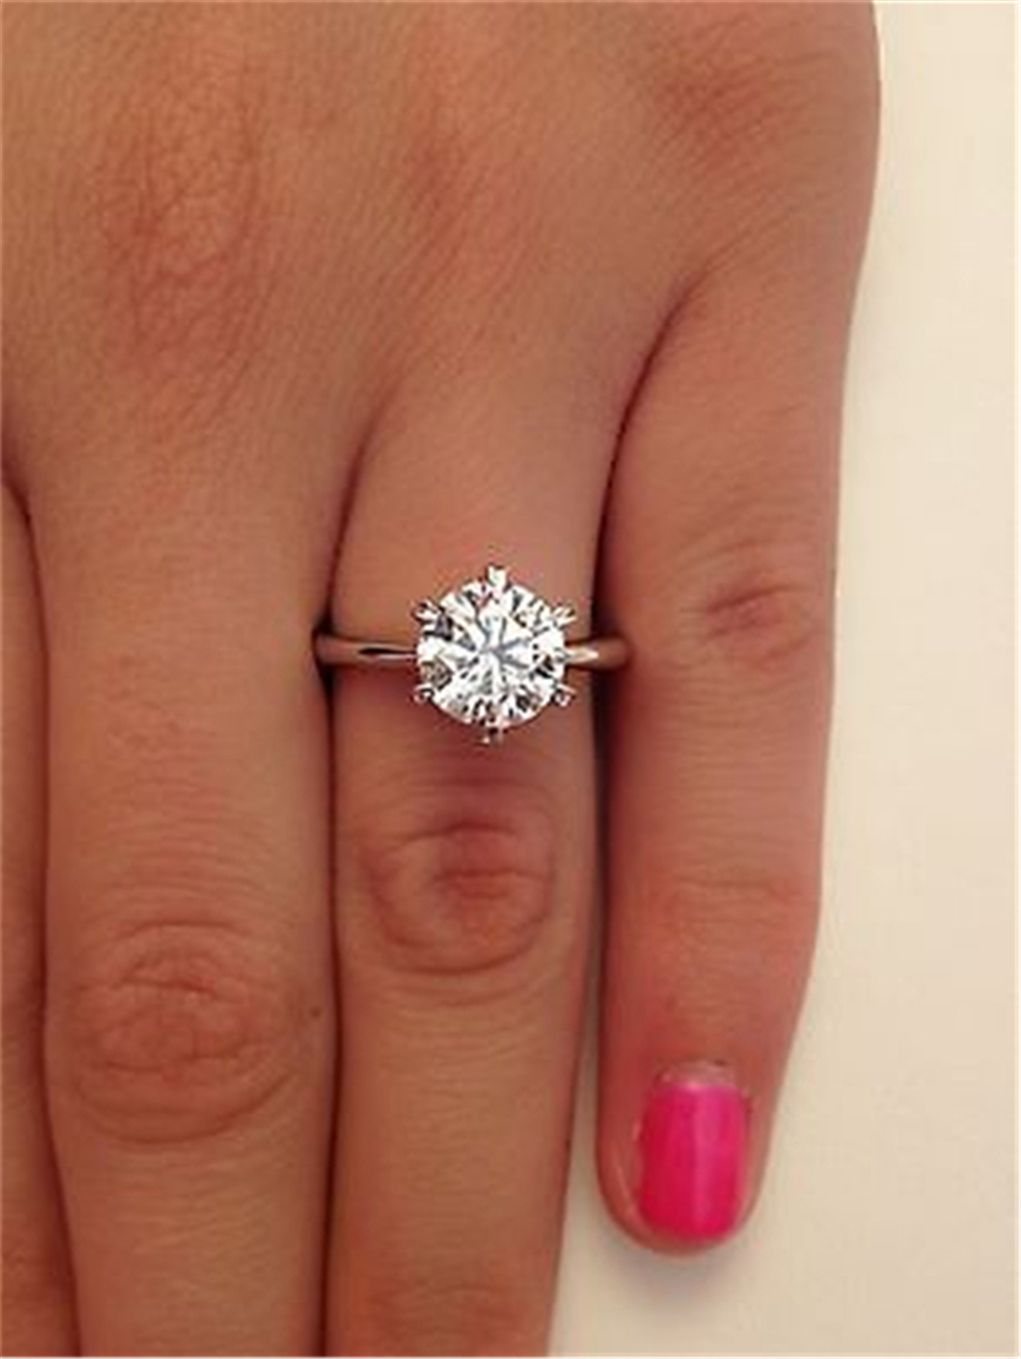 pretty so jealous gallery might stunning ring your band weddings that engagement rings get are main wedding